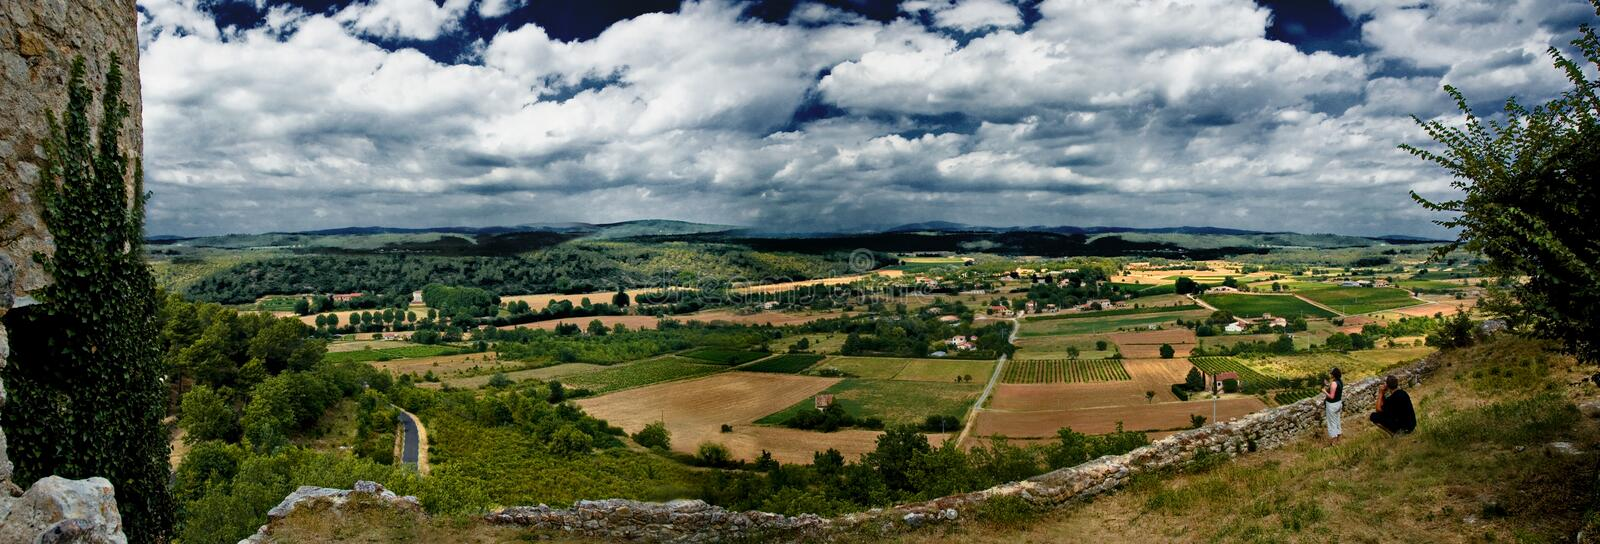 Download Panorama French landscape stock image. Image of european - 3025557